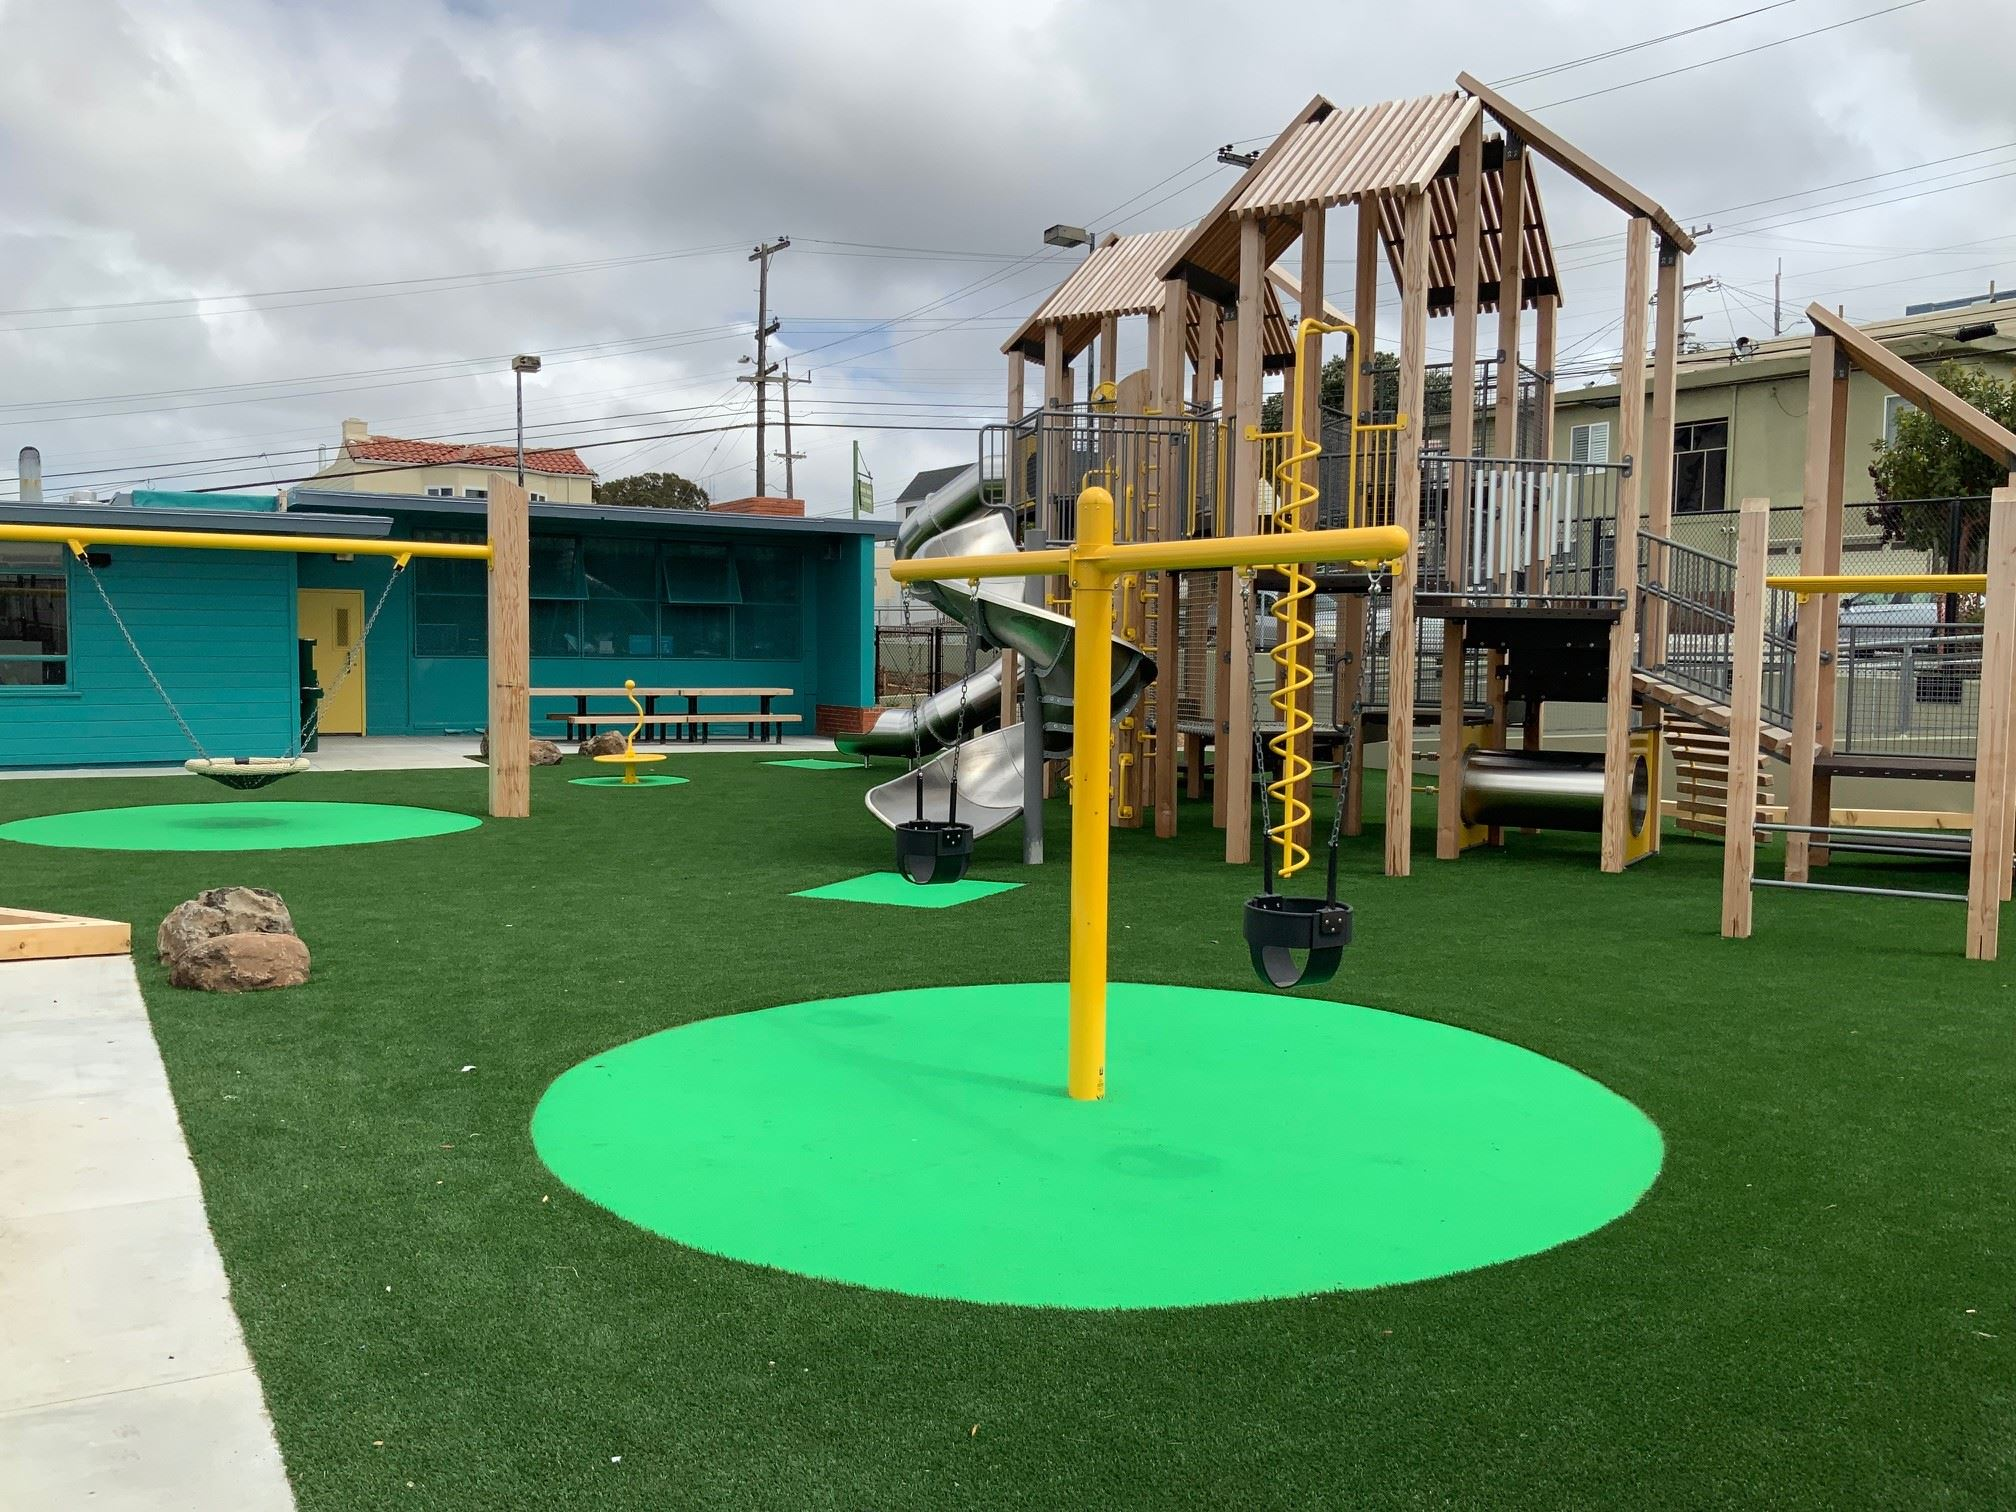 Merced Heights playground north view of the new play structure made out of wood, yellow metal tubing